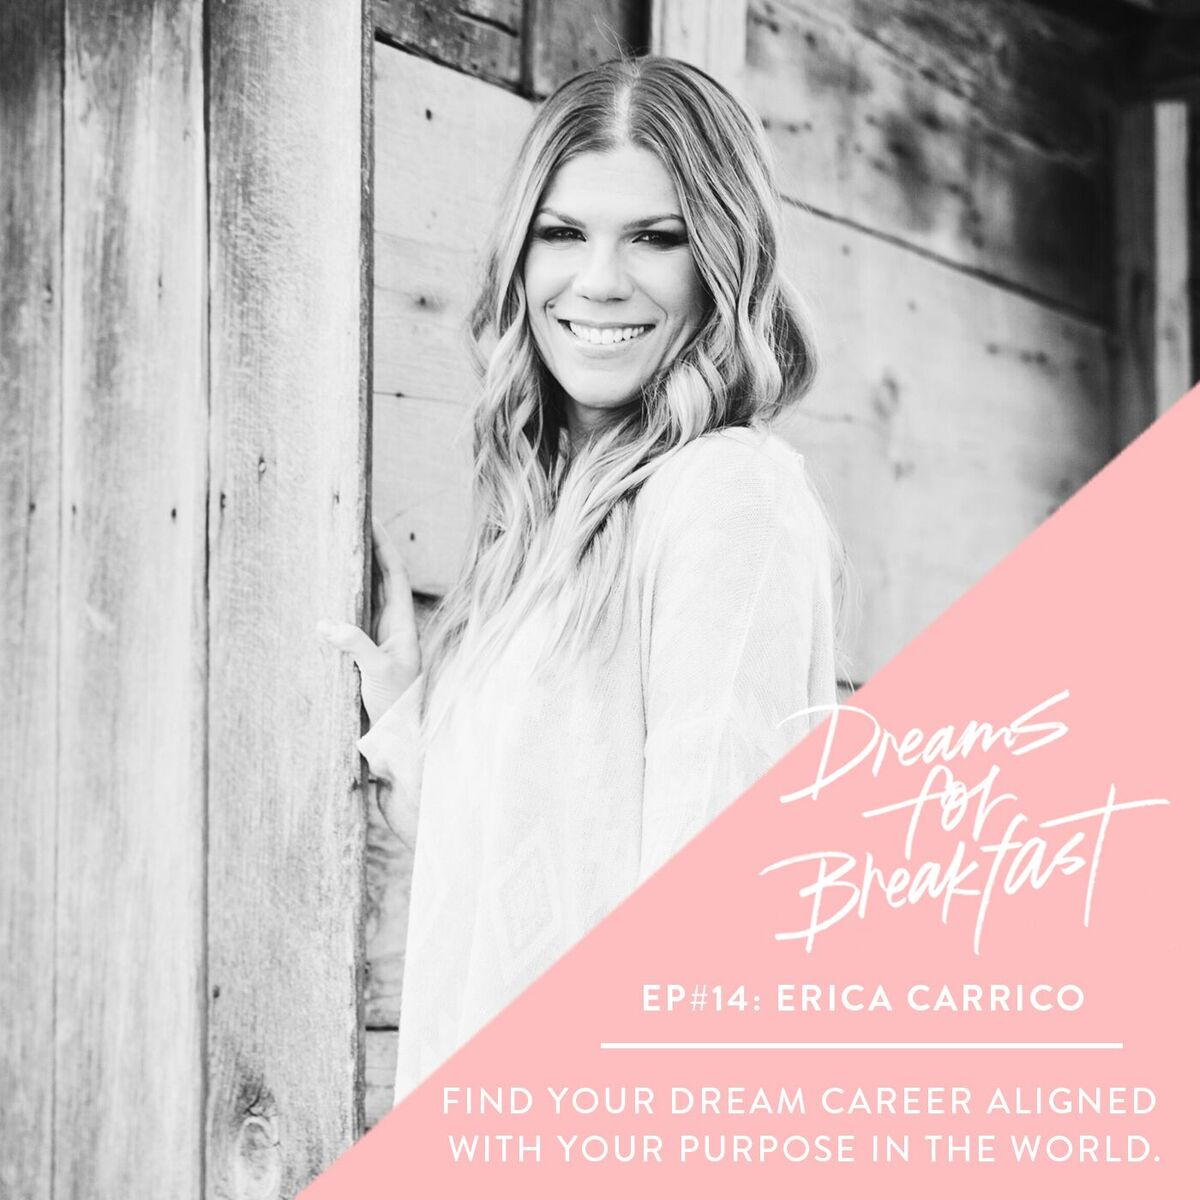 Dreams For Breakfast Podcast Erica Carrico